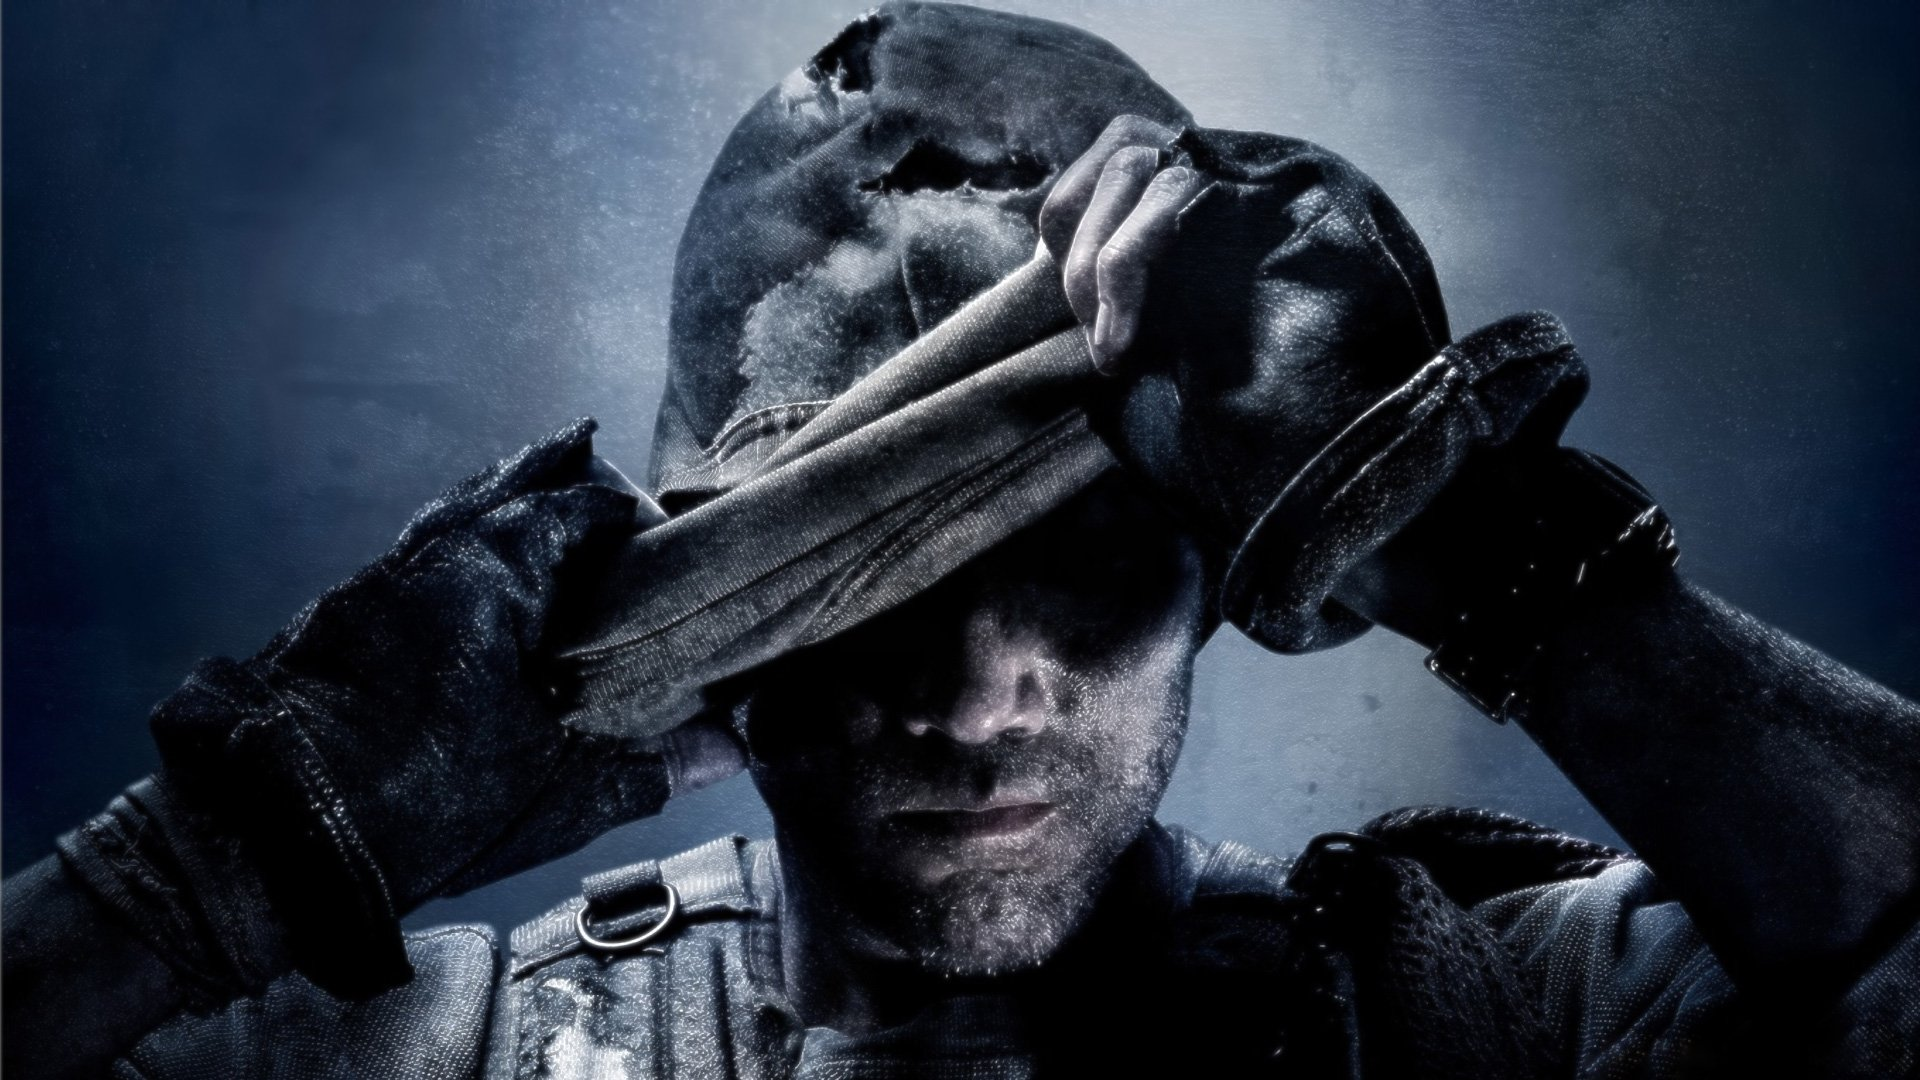 Free Download Call Of Duty Ghosts Wallpaper Hd Wallpaper Area Hd